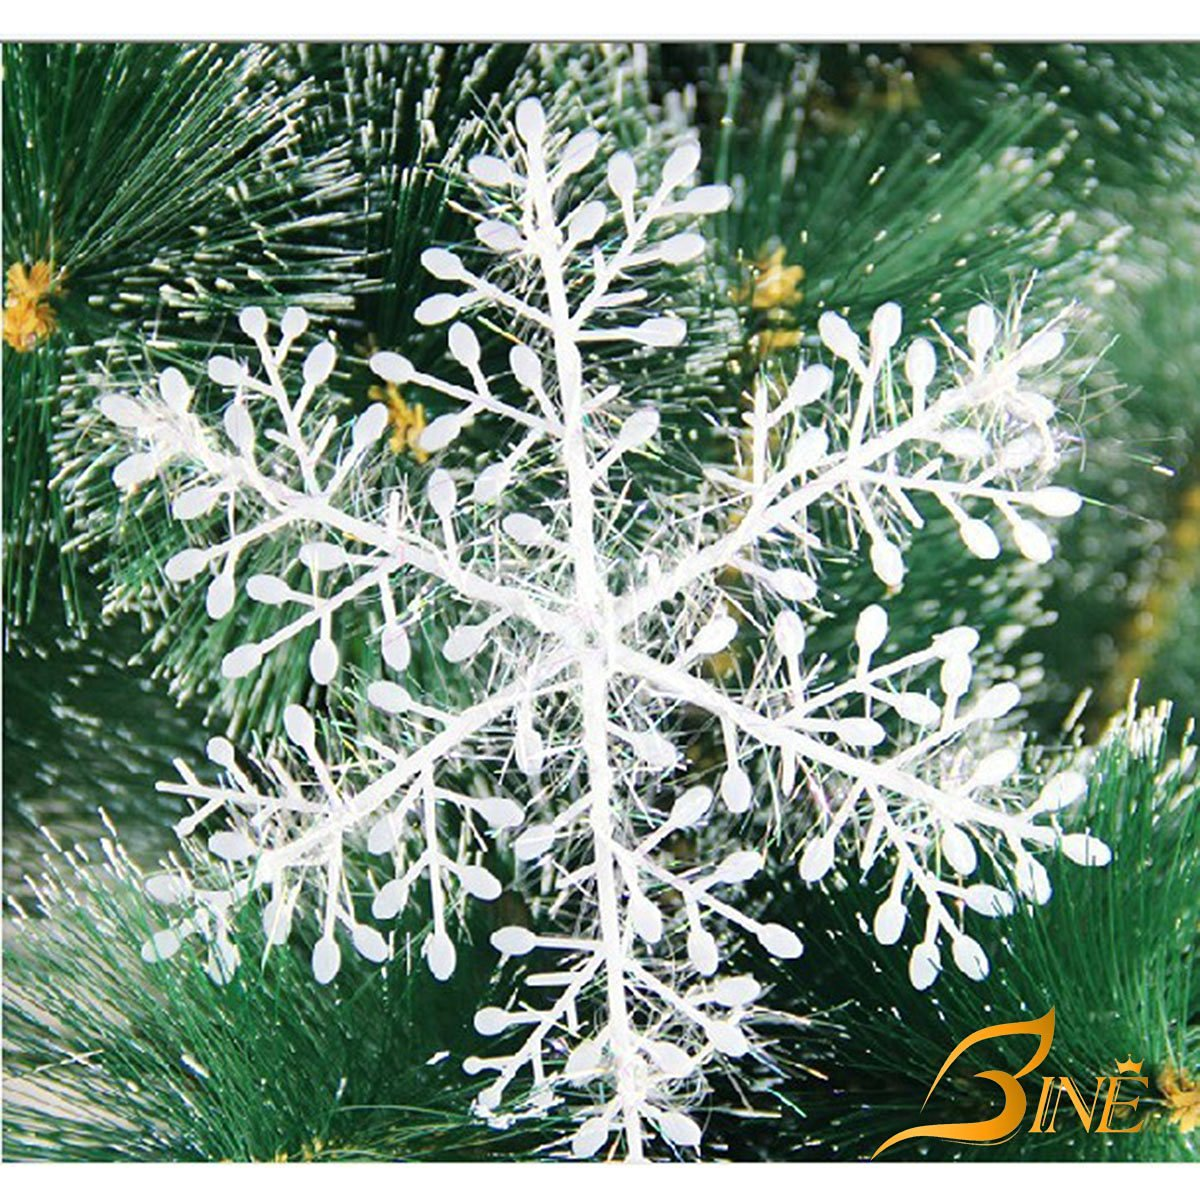 Buy Bine Set Of 30 Assorted Snowflake Christmas Ornaments Winter